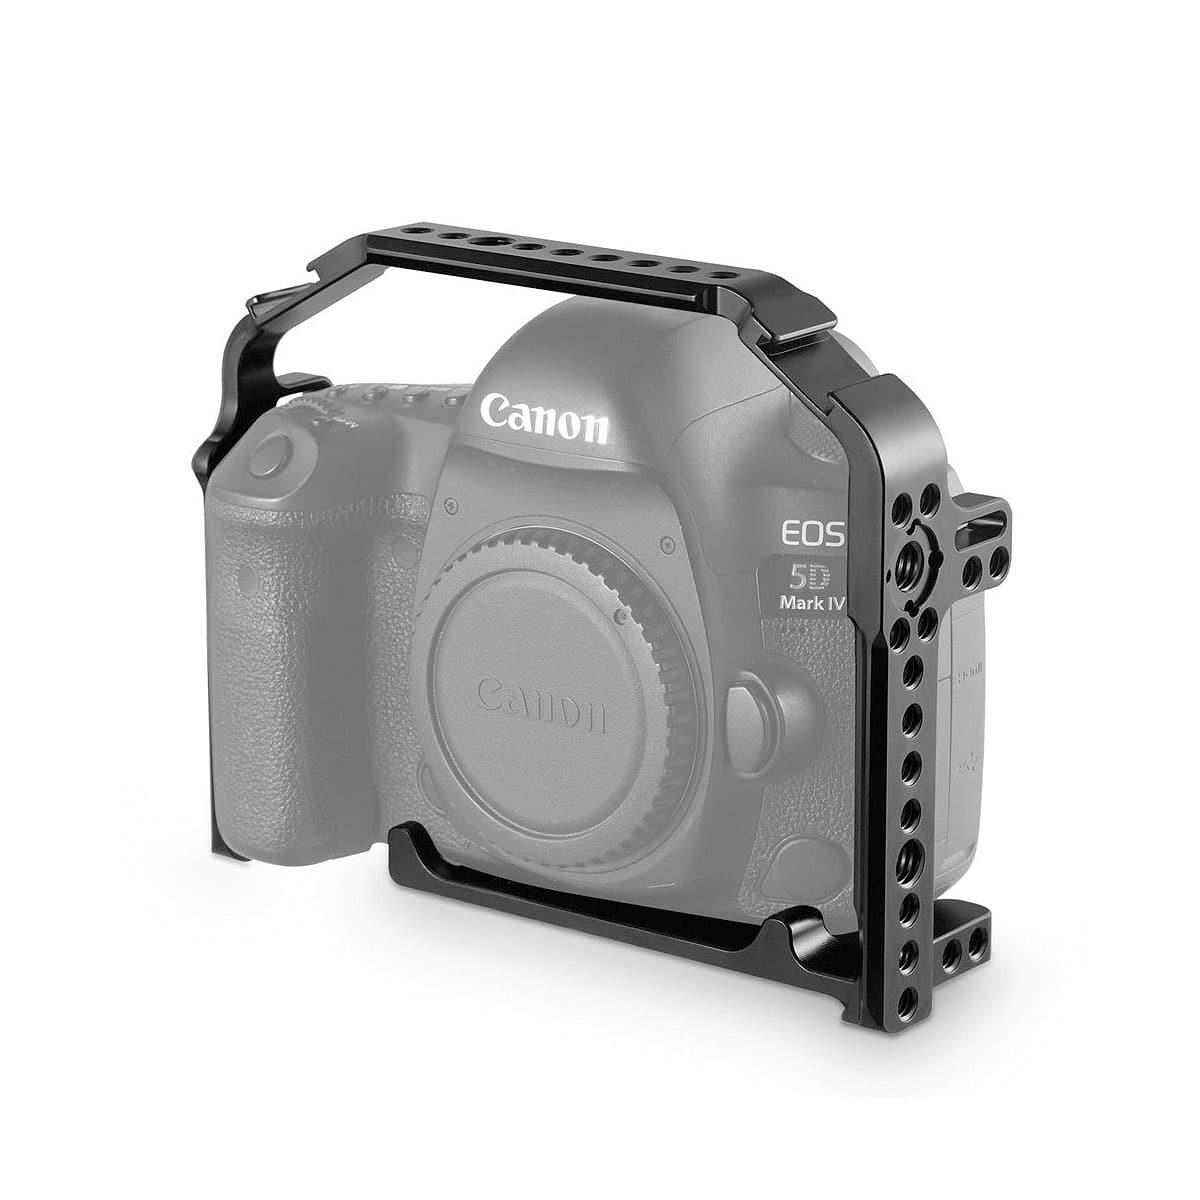 SmallRig Cage for Canon 5D Mark IV 1900